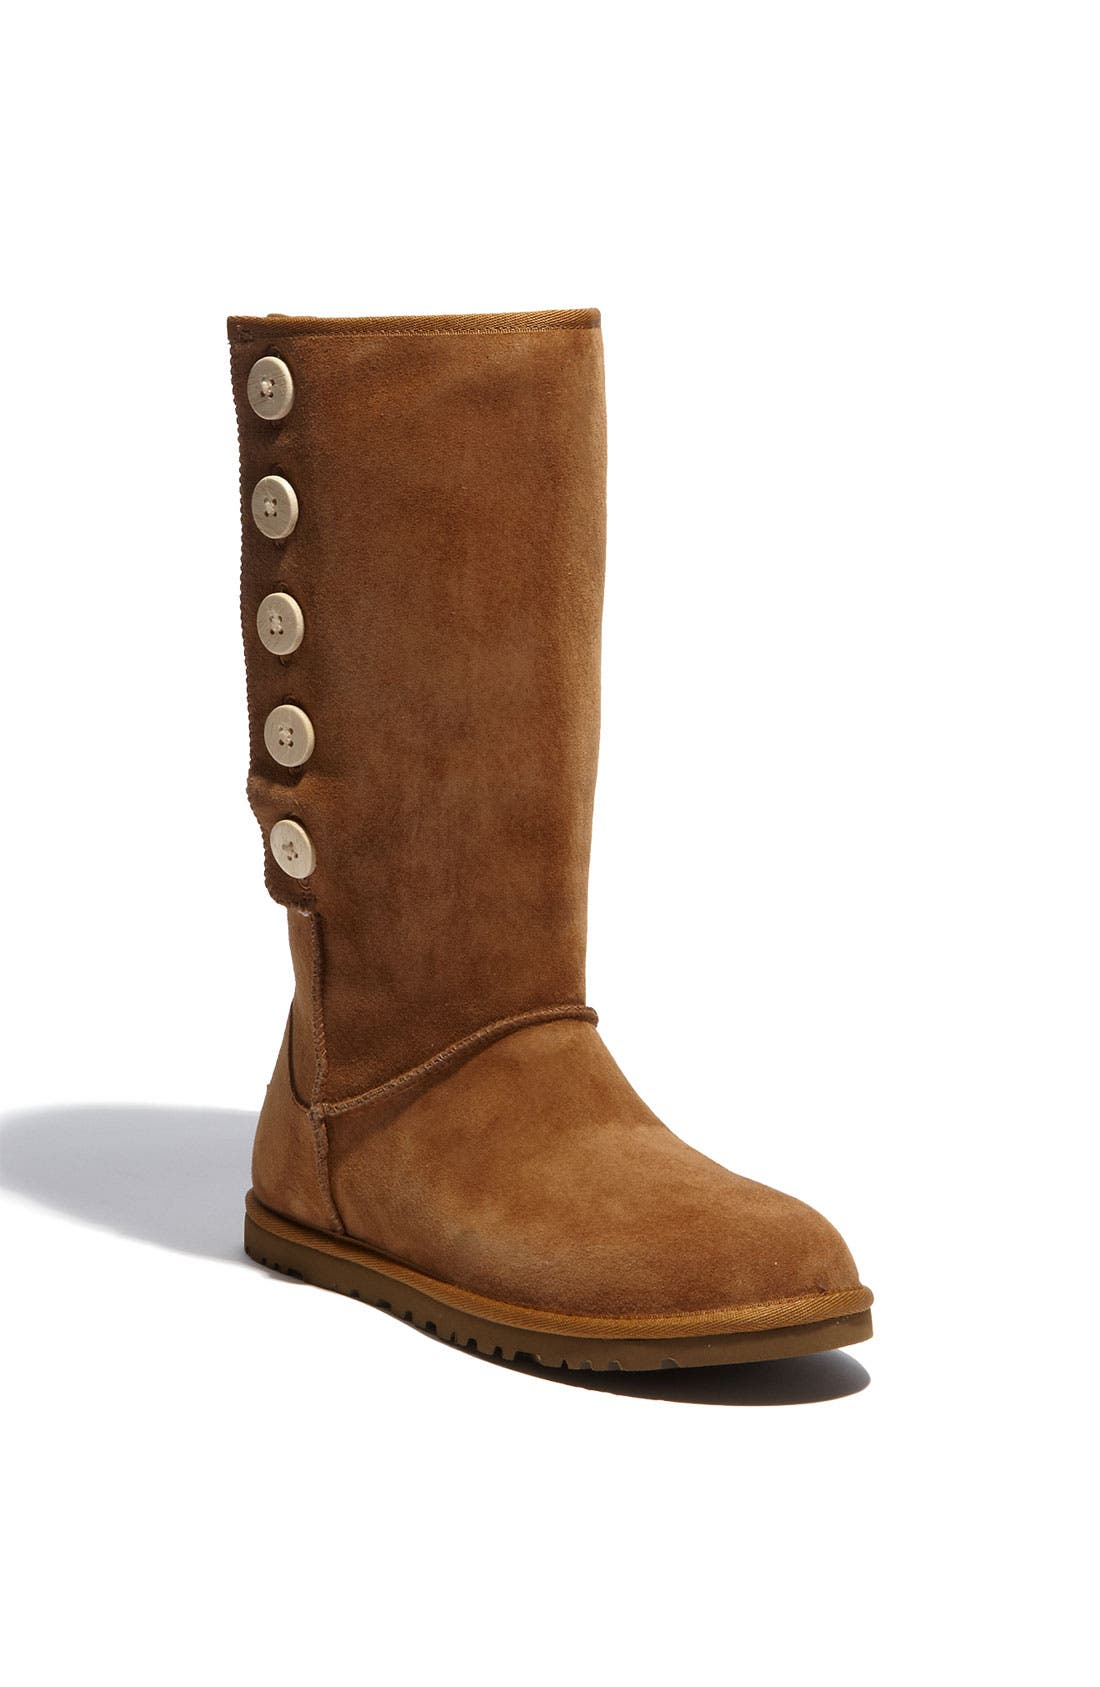 Alternate Image 1 Selected - UGG® Australia 'Lo Pro' Suede Boot (Women)